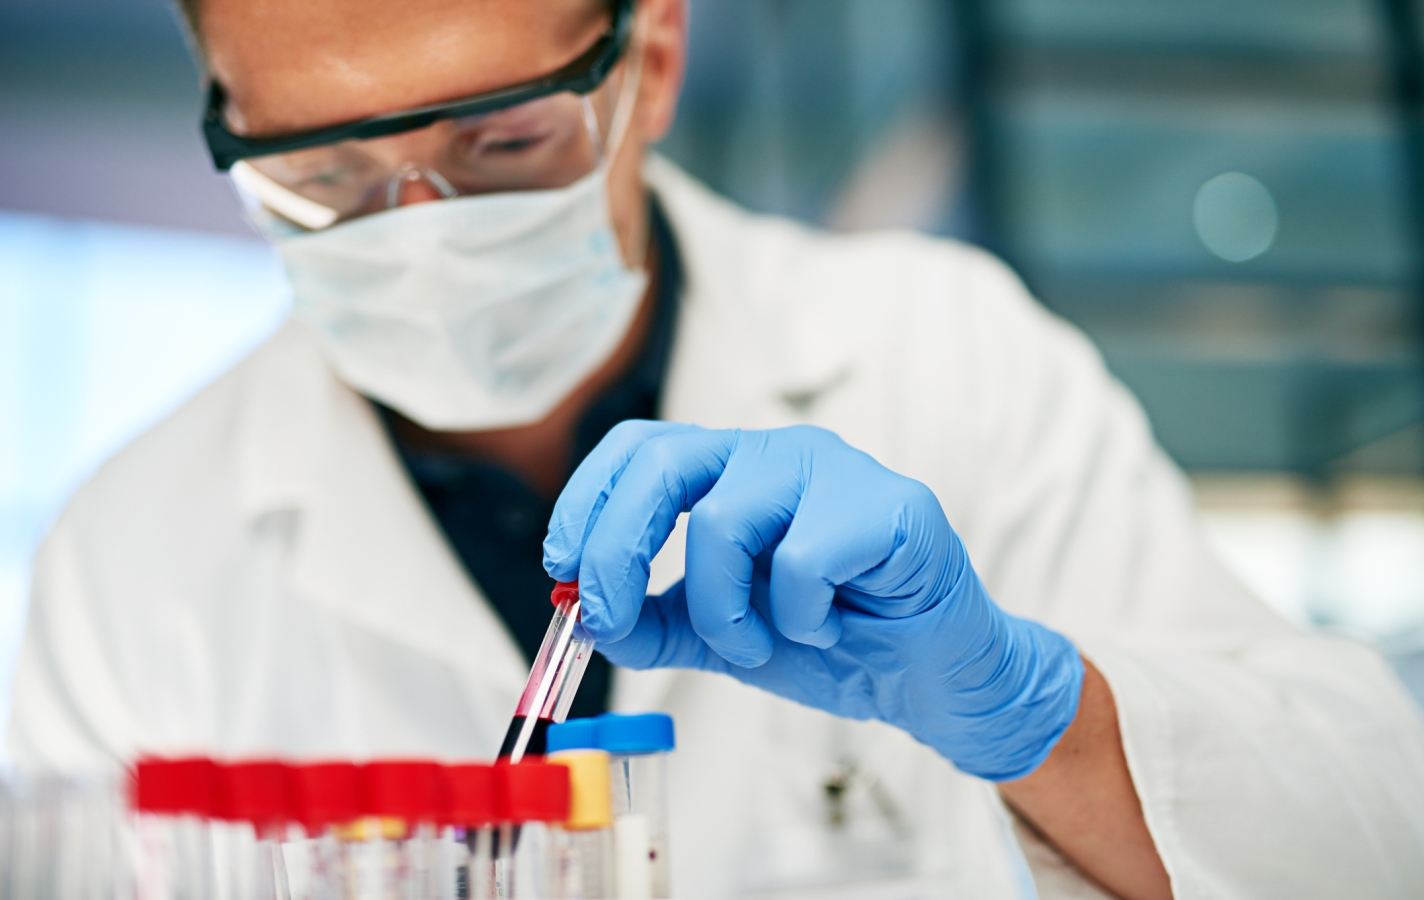 male doctor working with blood samples in his lab